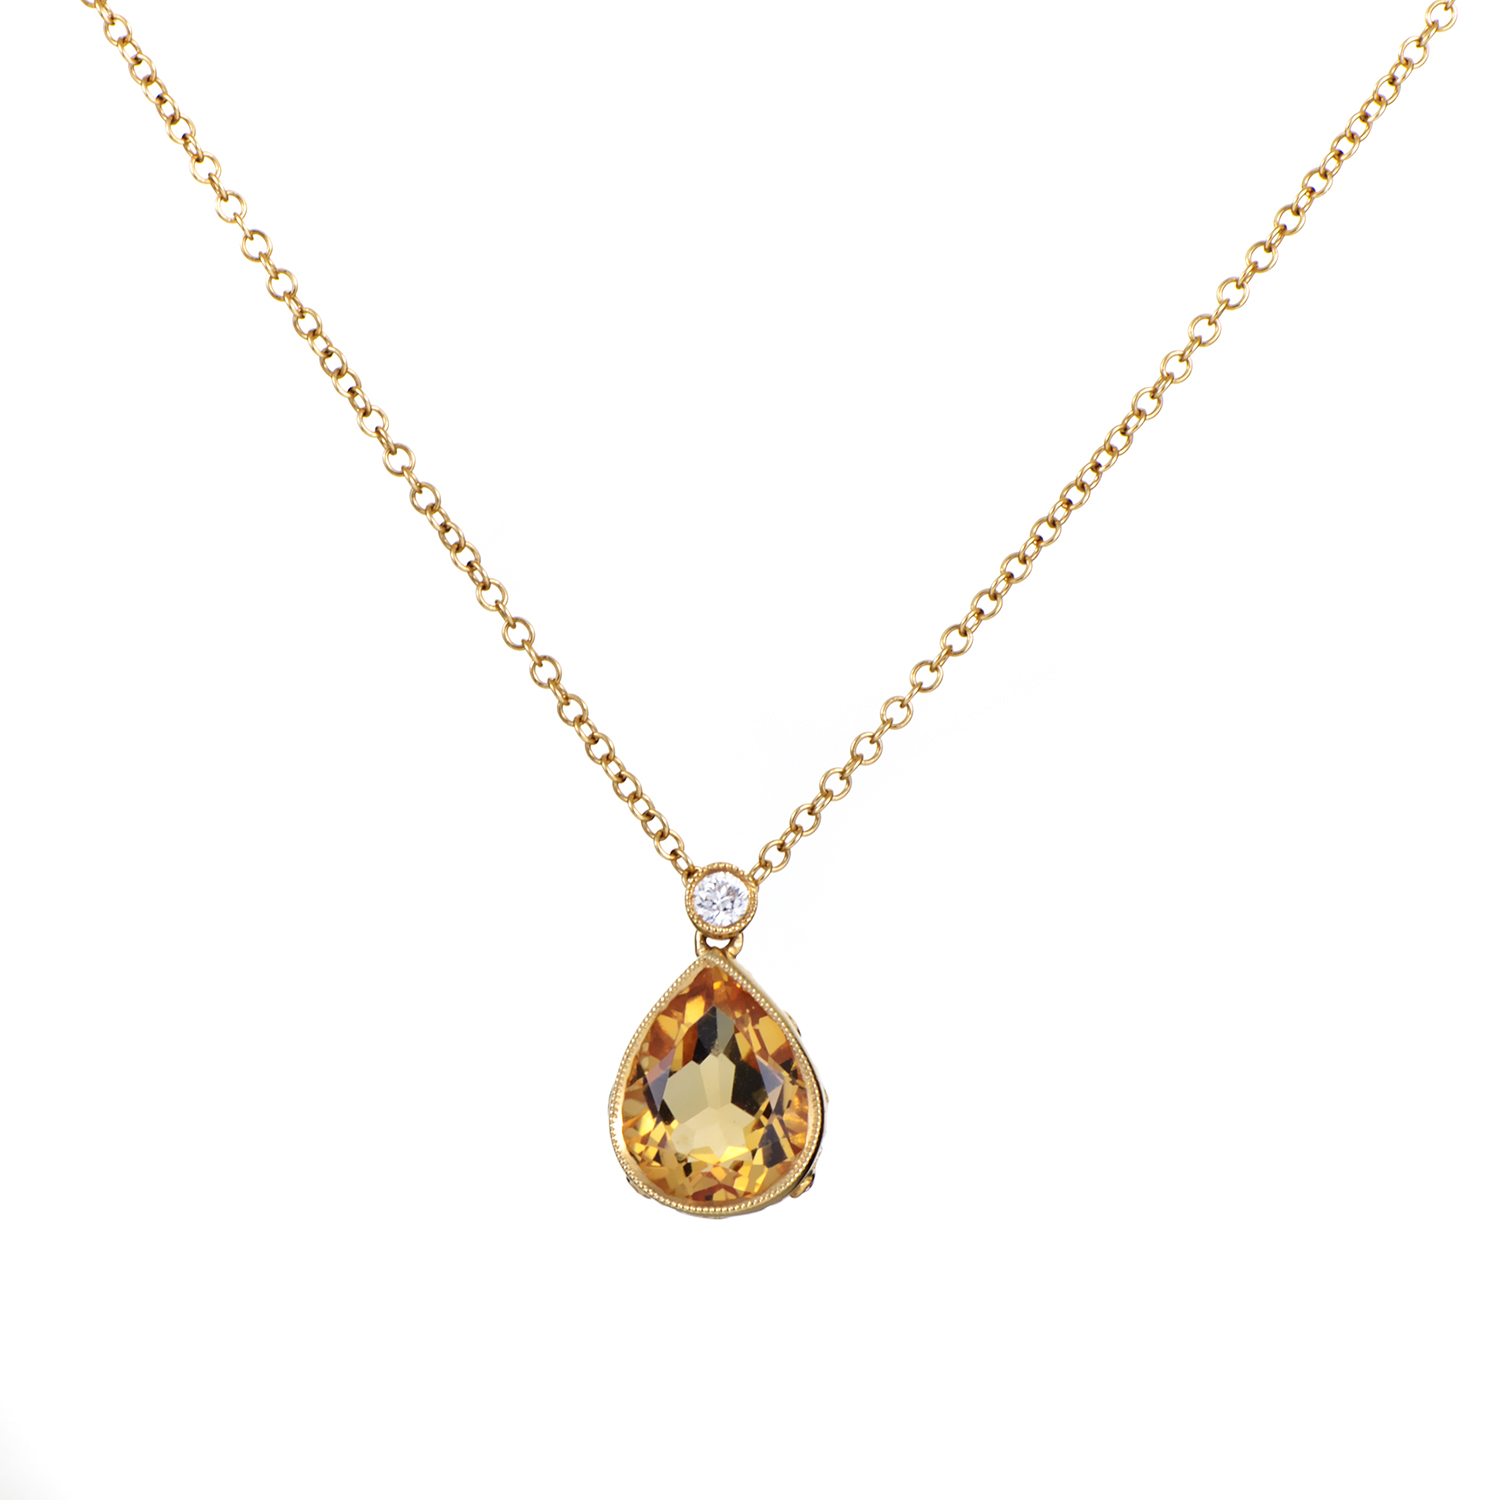 Women's 18K Yellow Gold Diamond & Citrine Teardrop Pendant Necklace